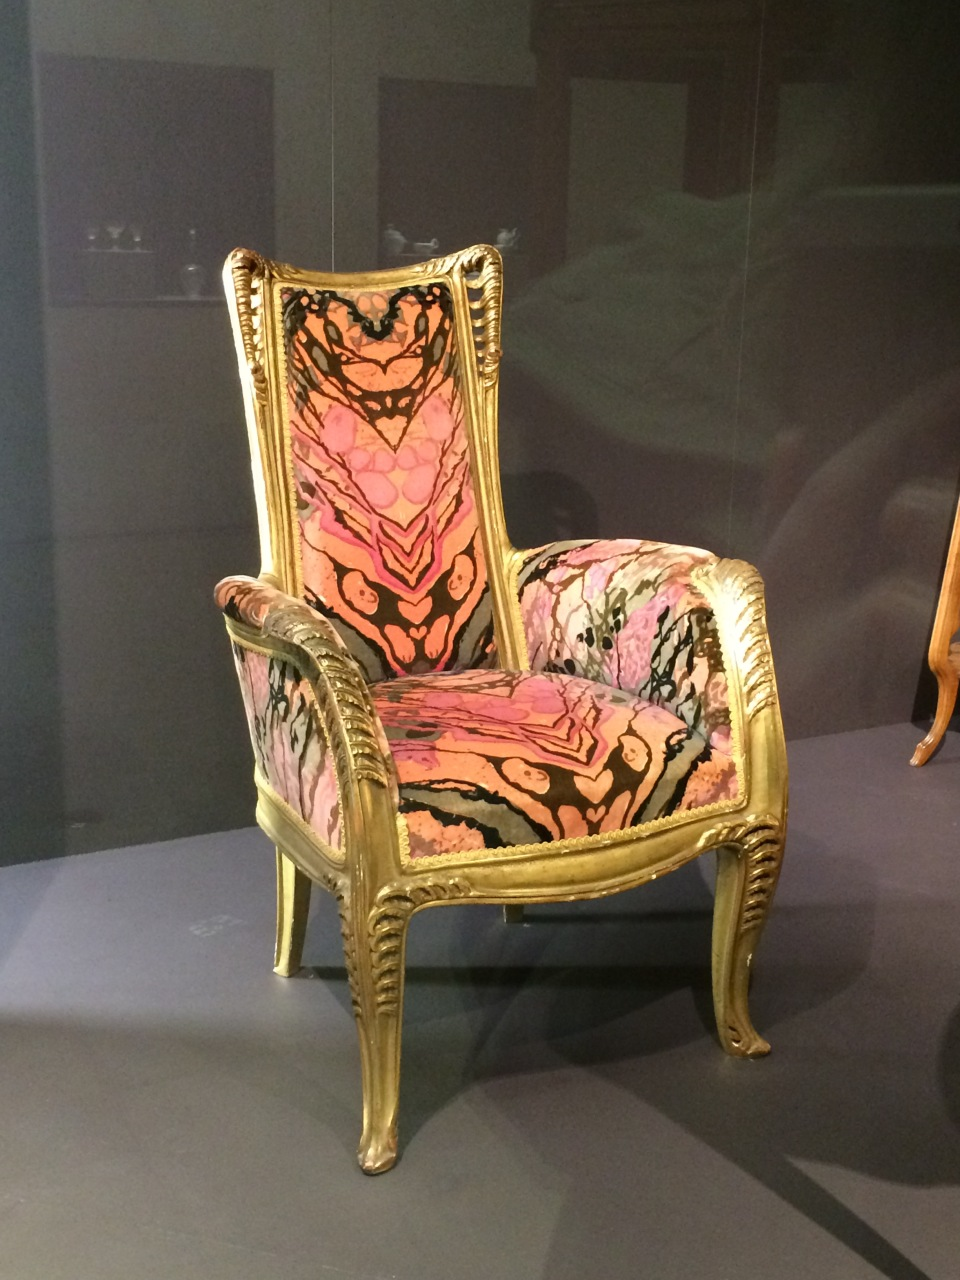 Art nouveau chair